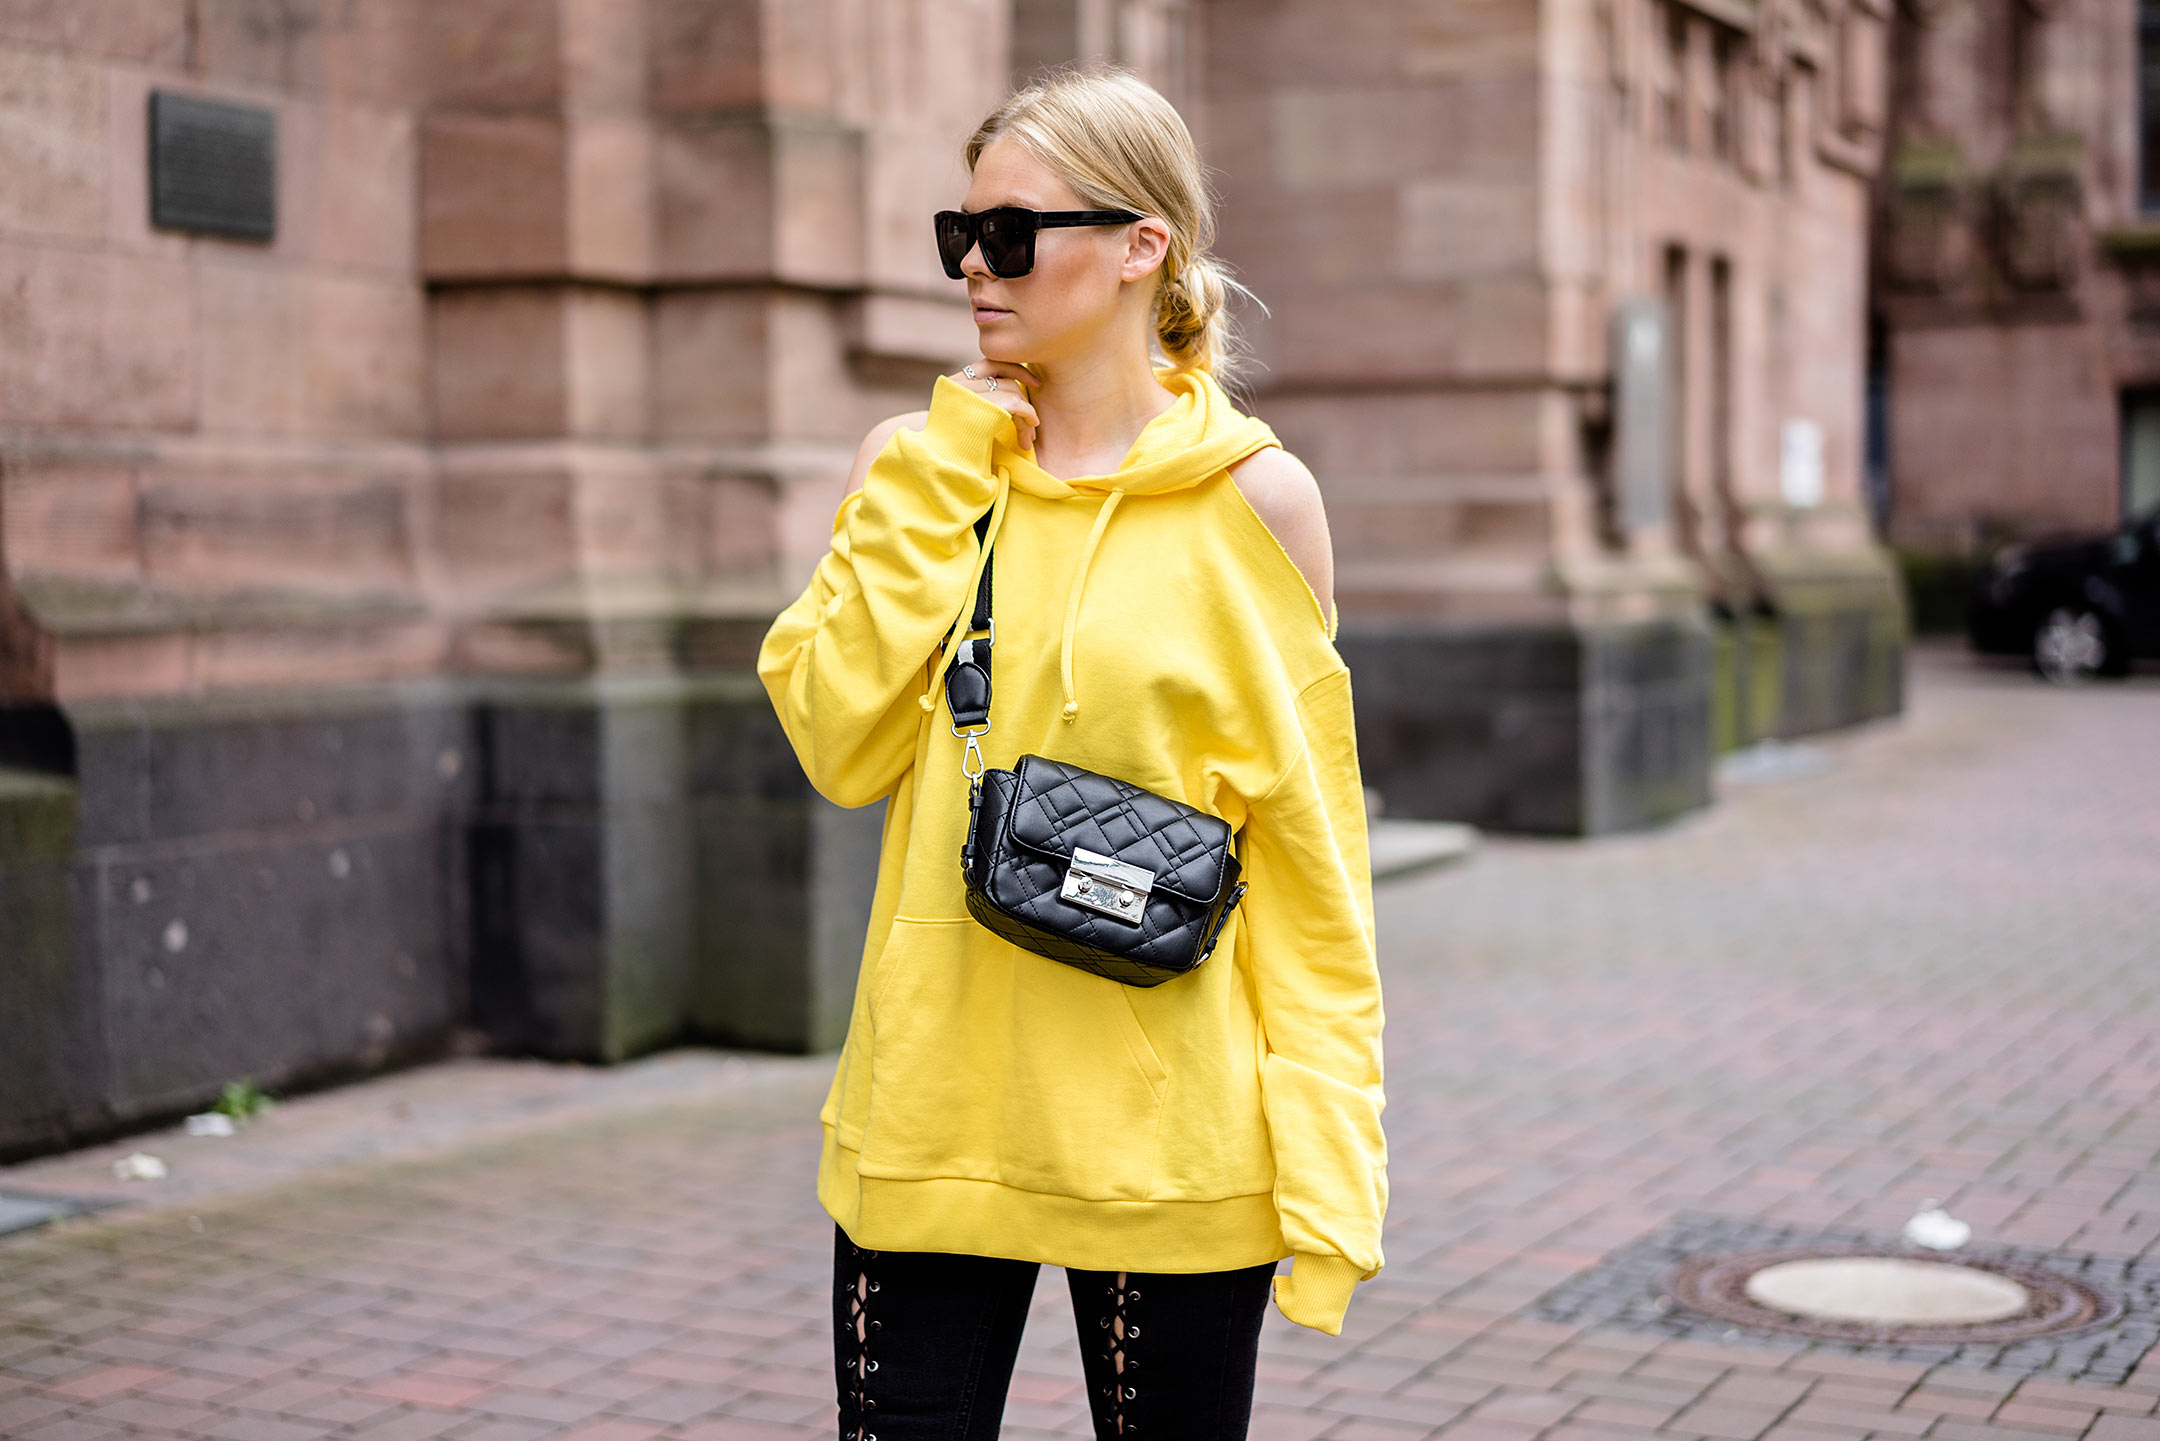 Trendfarbe Gelb Hoodie Outfit Streetstyle Fashion Blogger Sunnyinga Düsseldorf